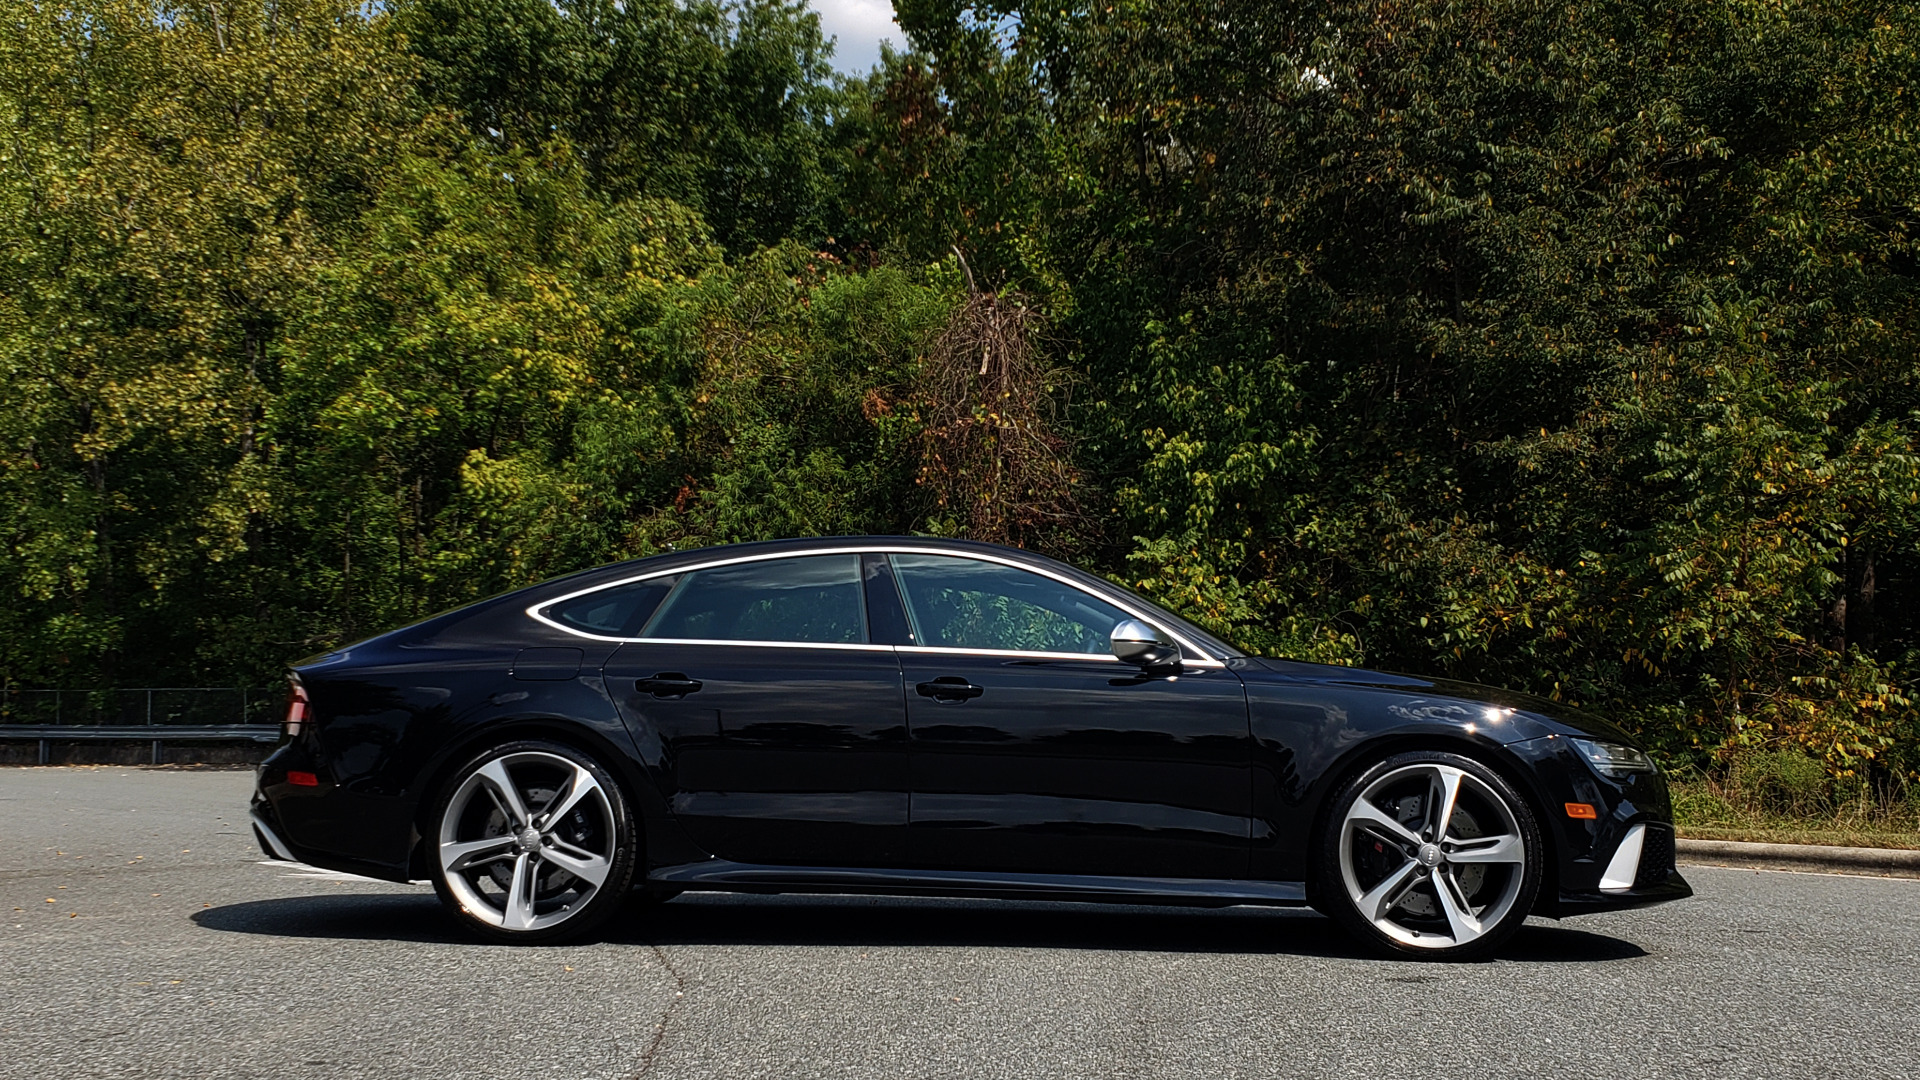 Used 2016 Audi RS 7 PRESTIGE / NAV / SUNROOF / BOSE / CAMERA / HTD STS for sale Sold at Formula Imports in Charlotte NC 28227 13